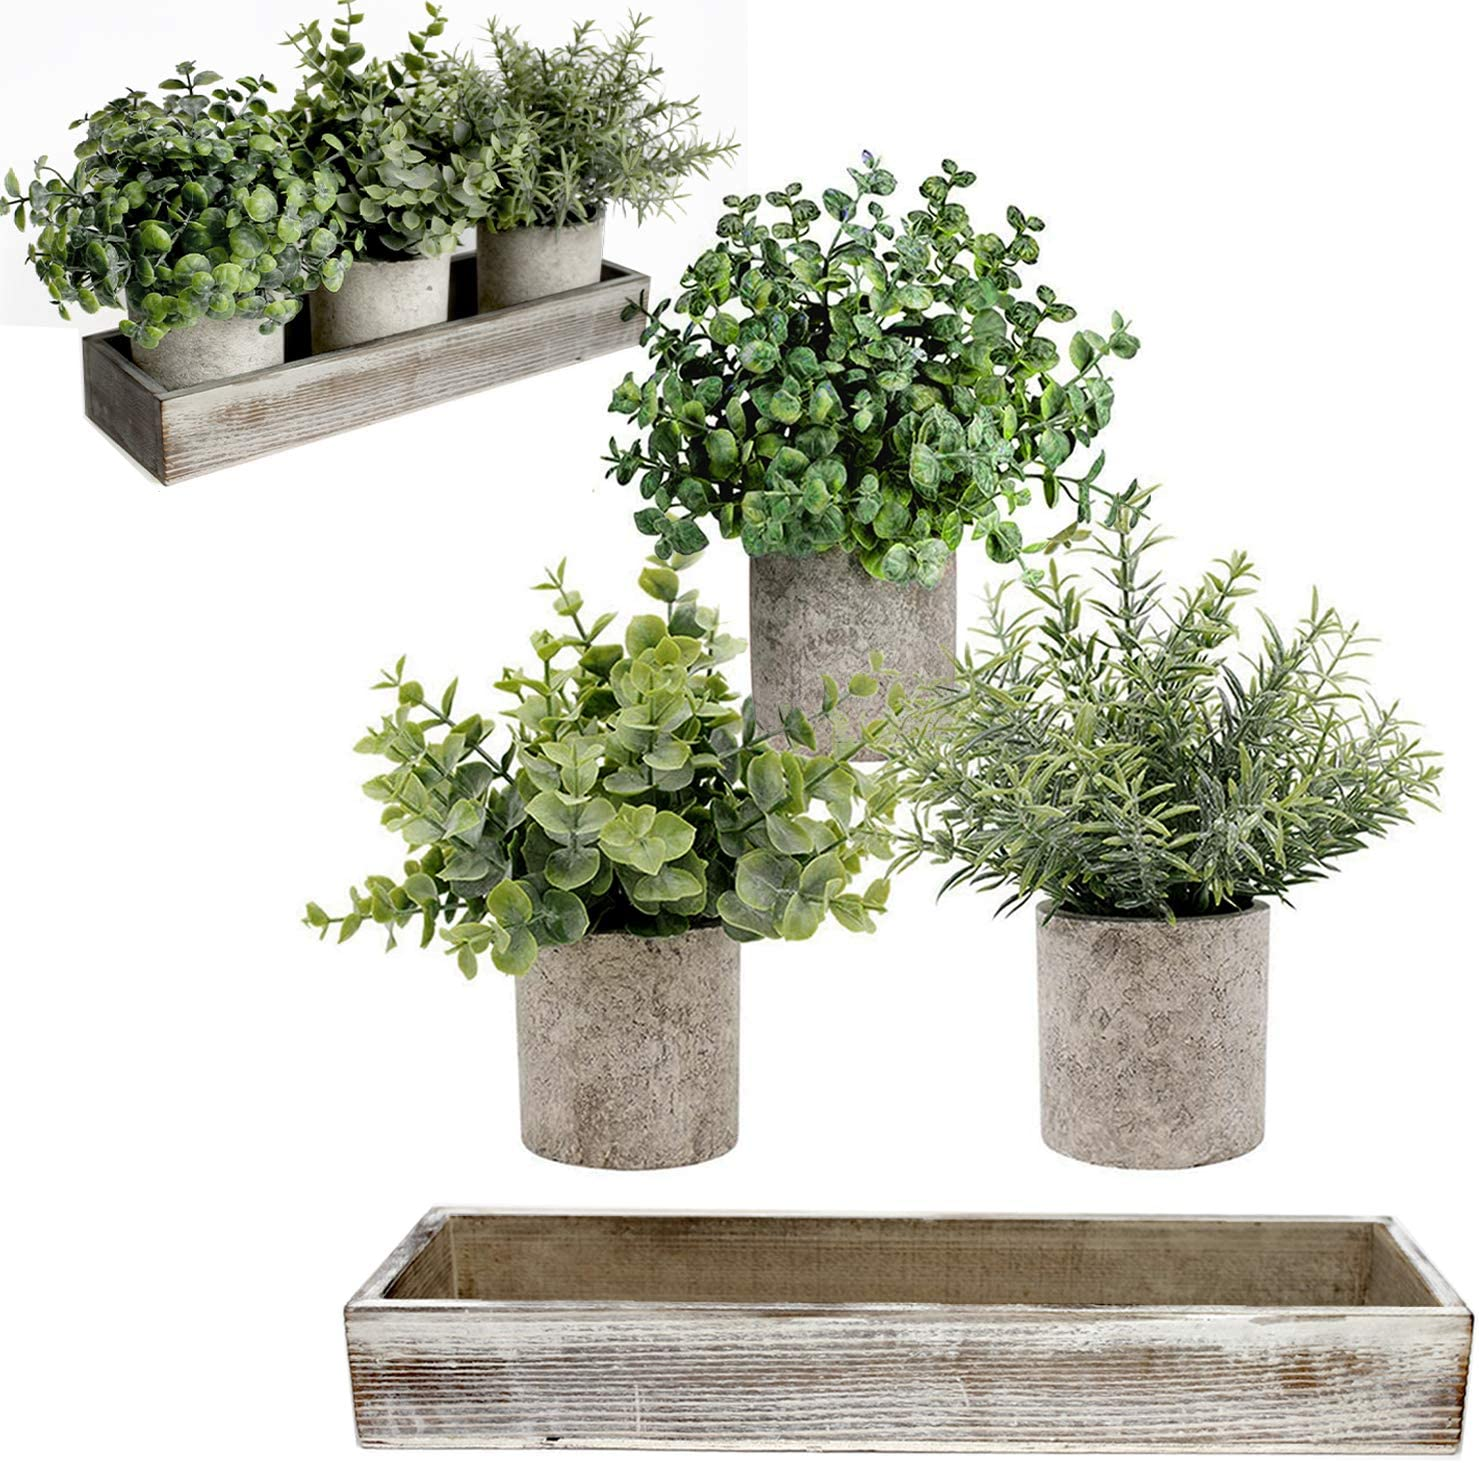 Mini Potted Artificial Plants - Artificial Eucalyptus Plant, Rosemary, Boxwood with Rustic Planter Box - Farmhouse plants for Home Decor - Small Fake Plants 3 Set - Indoor Bathroom Bedroom Office Desk